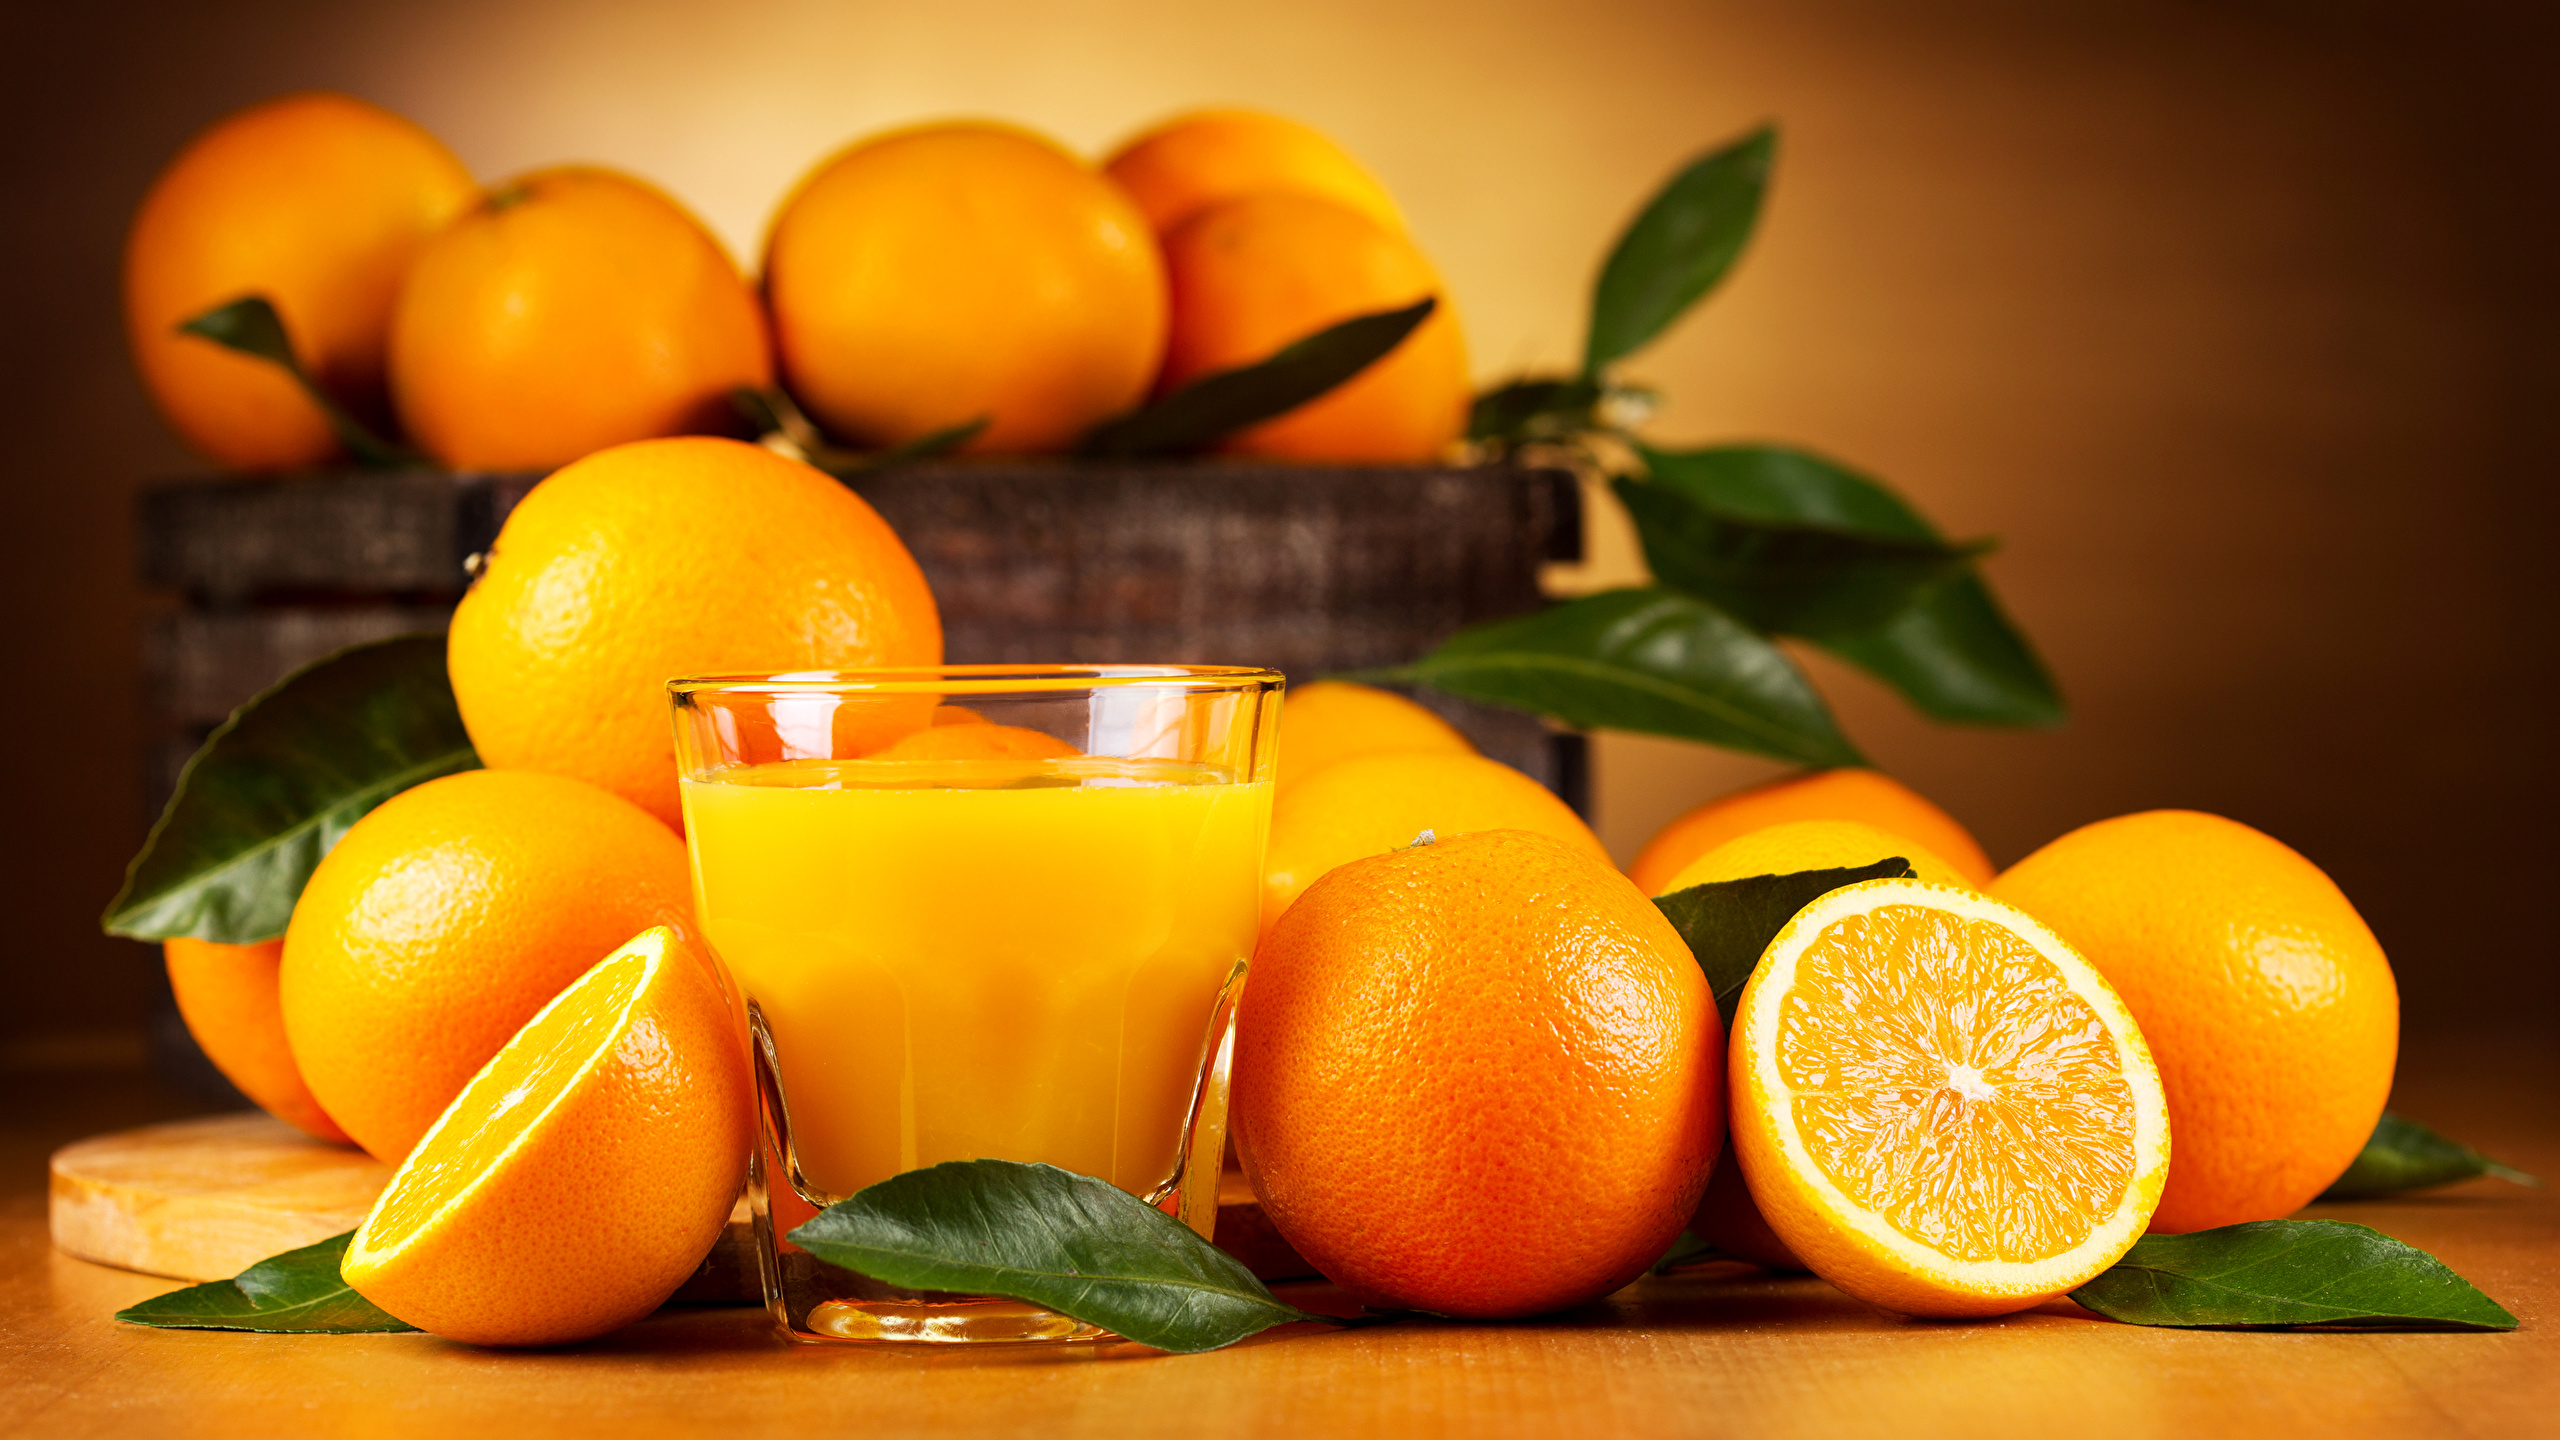 Images Juice Orange fruit Highball glass Food Citrus 2560x1440 2560x1440